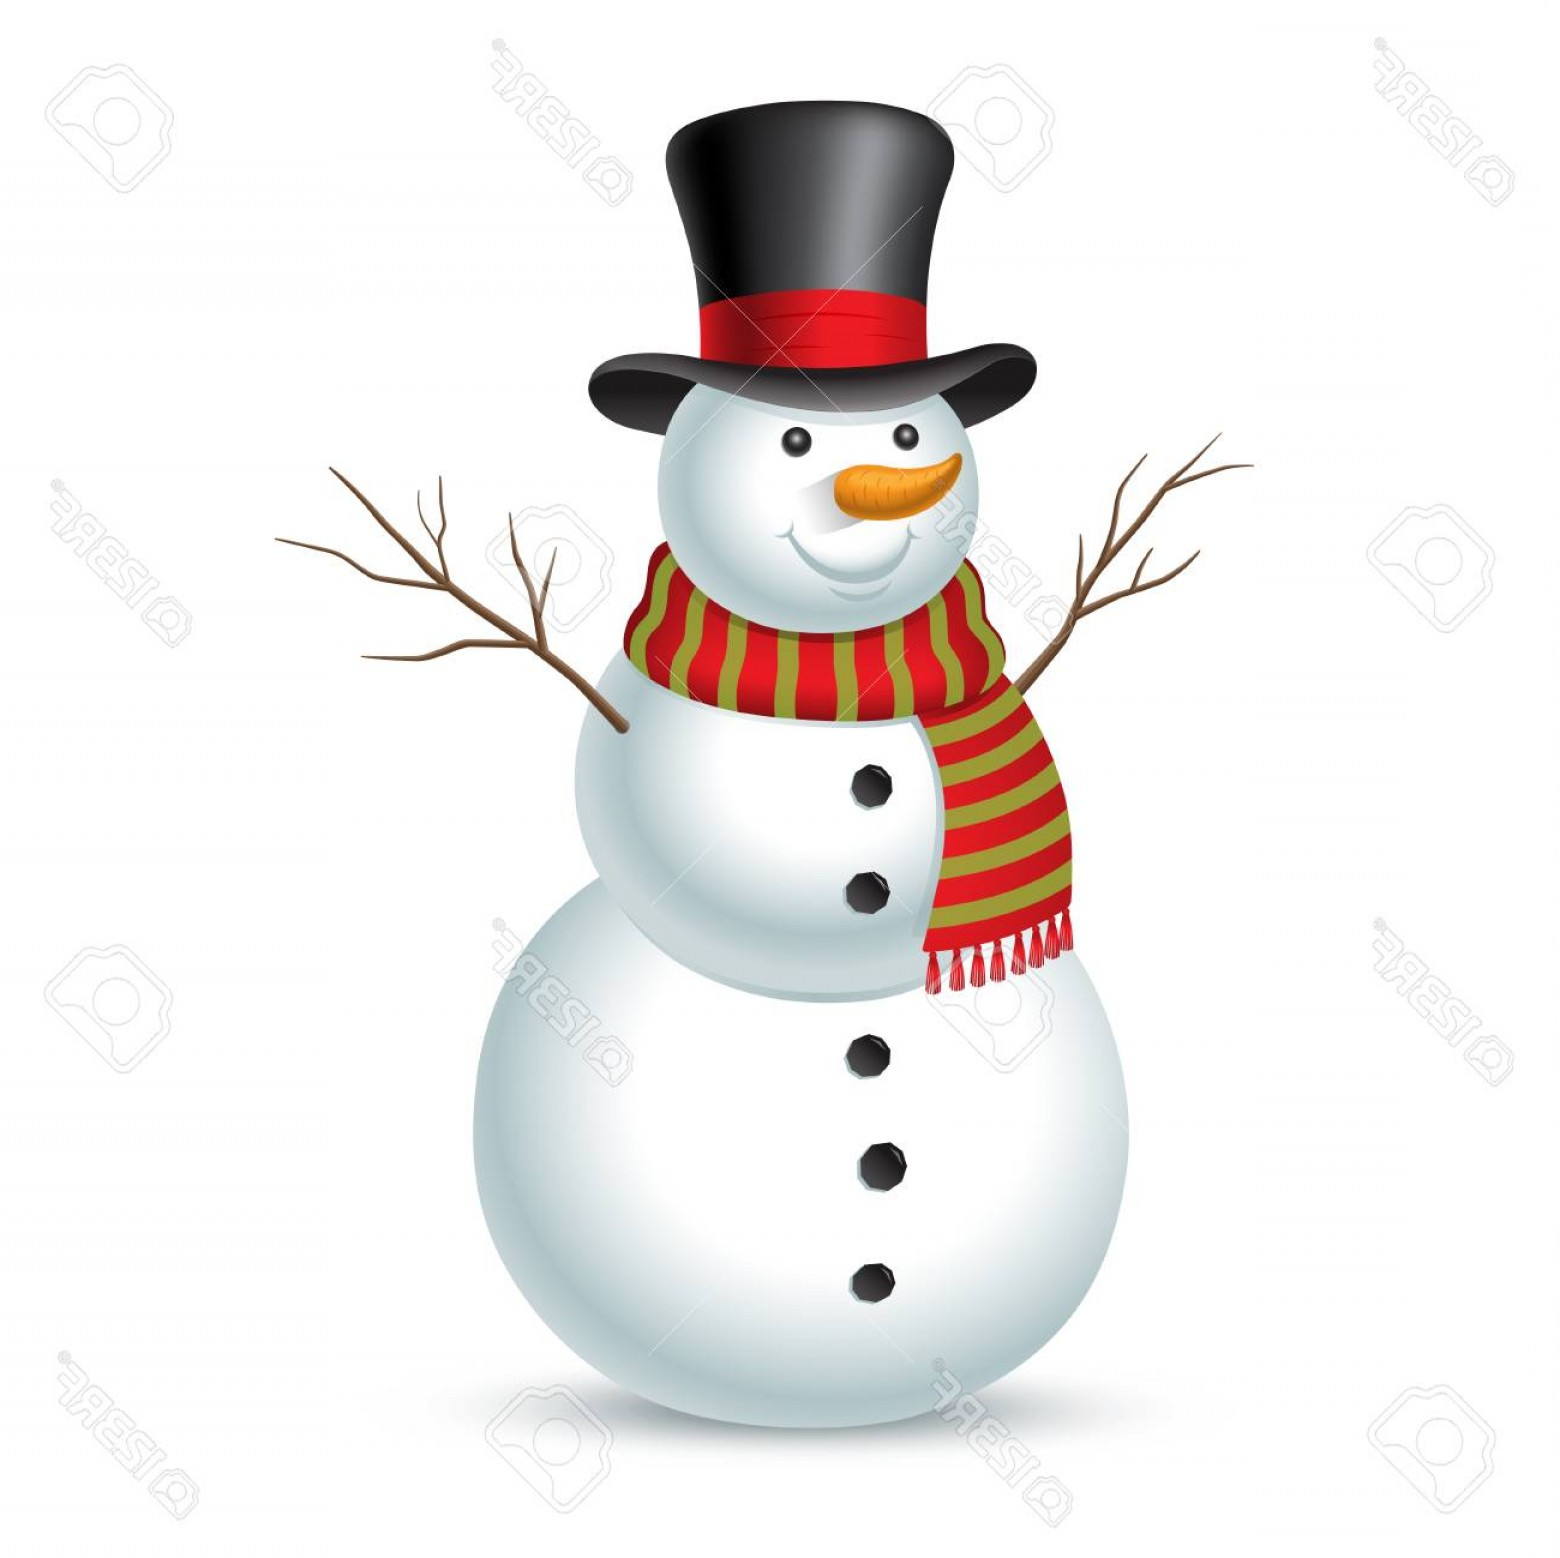 No Hat With Snowman Vector: Photostock Vector Christmas Snowman Vector Illustration